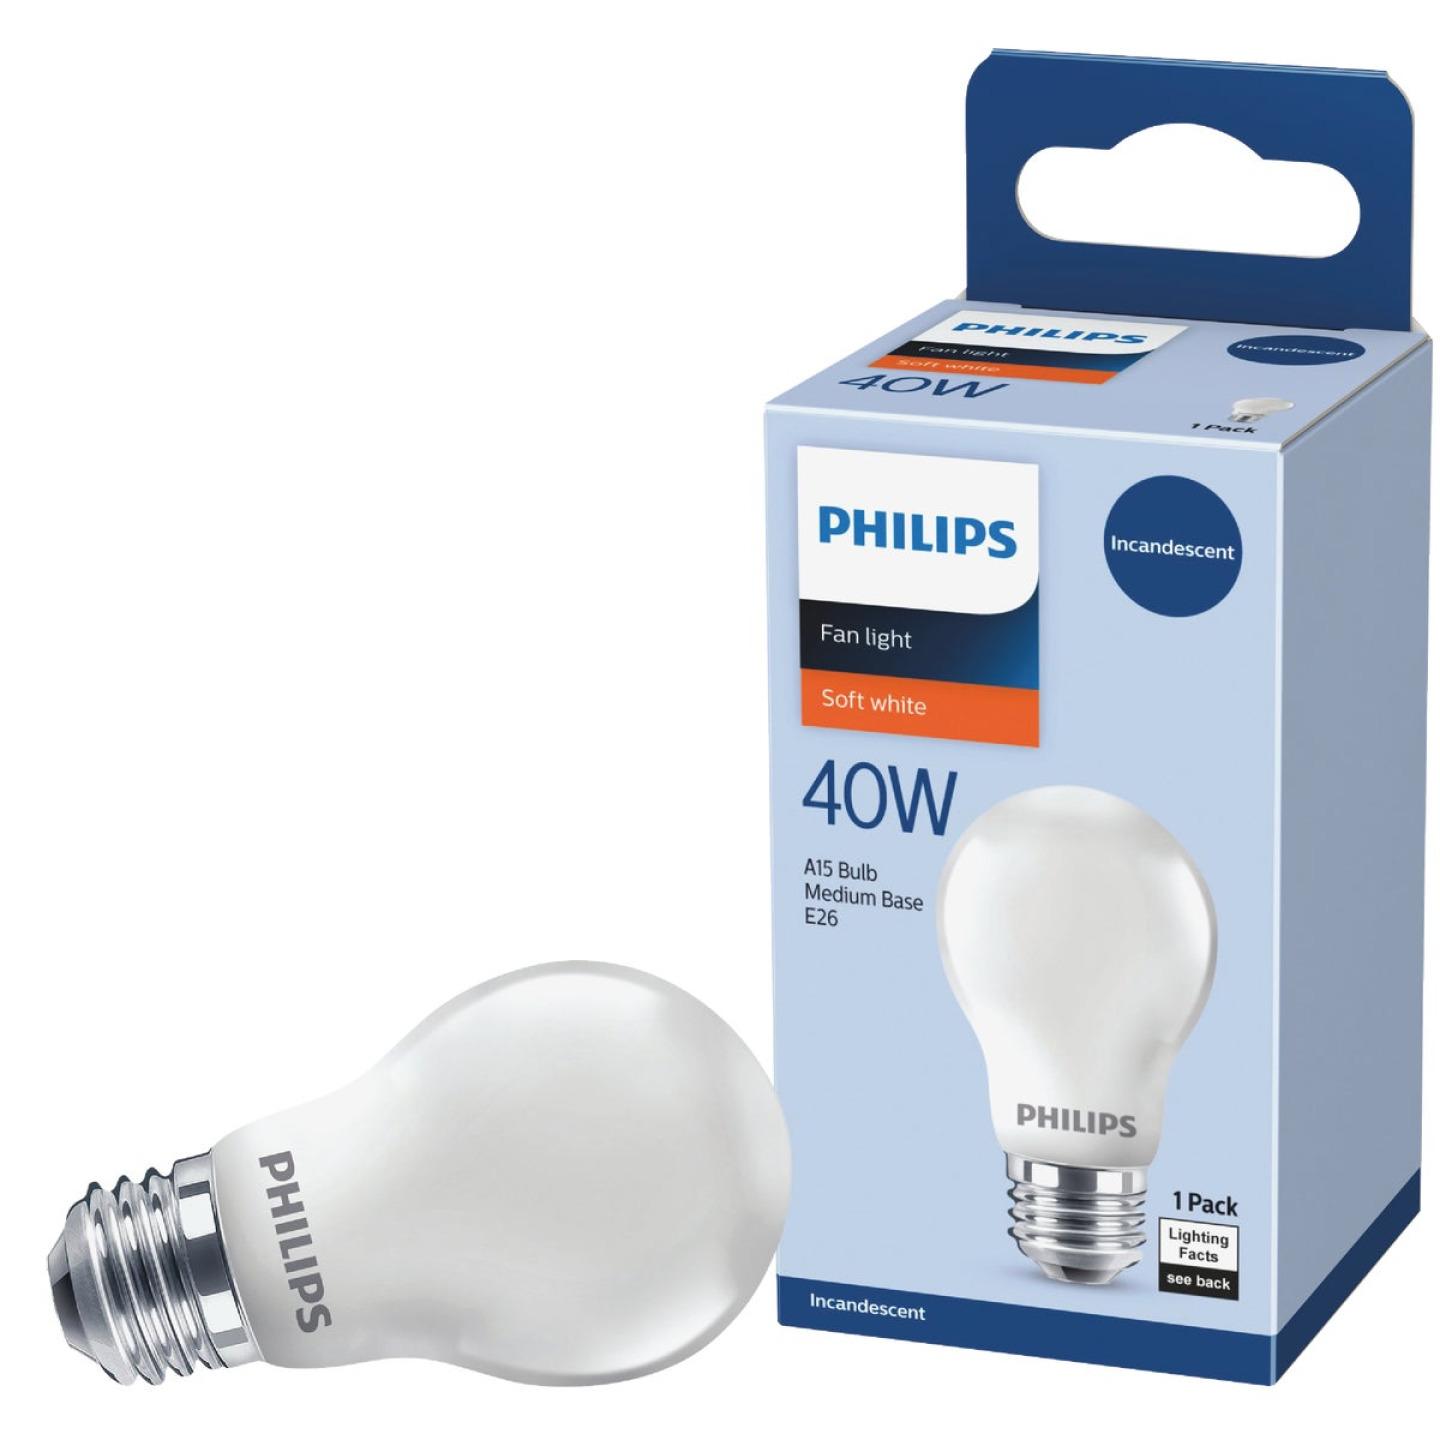 Philips DuraMax 40W Frosted Medium A15 Incandescent Ceiling Fan Light Bulb Image 1